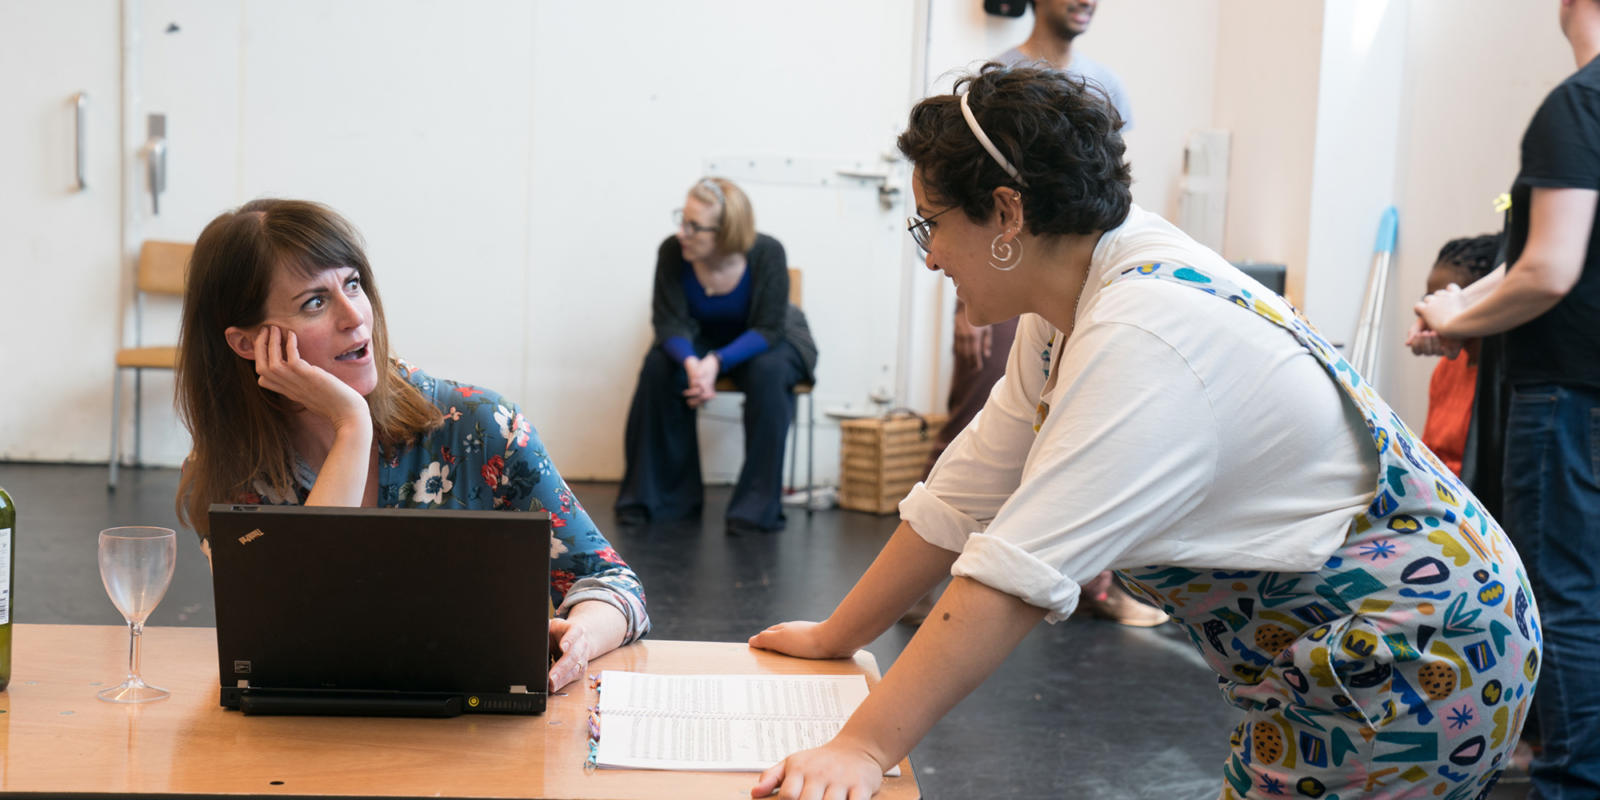 Rachael Lloyd, Eyra Norman. Dido at Unicorn Theatre. (c) Craig Sugden